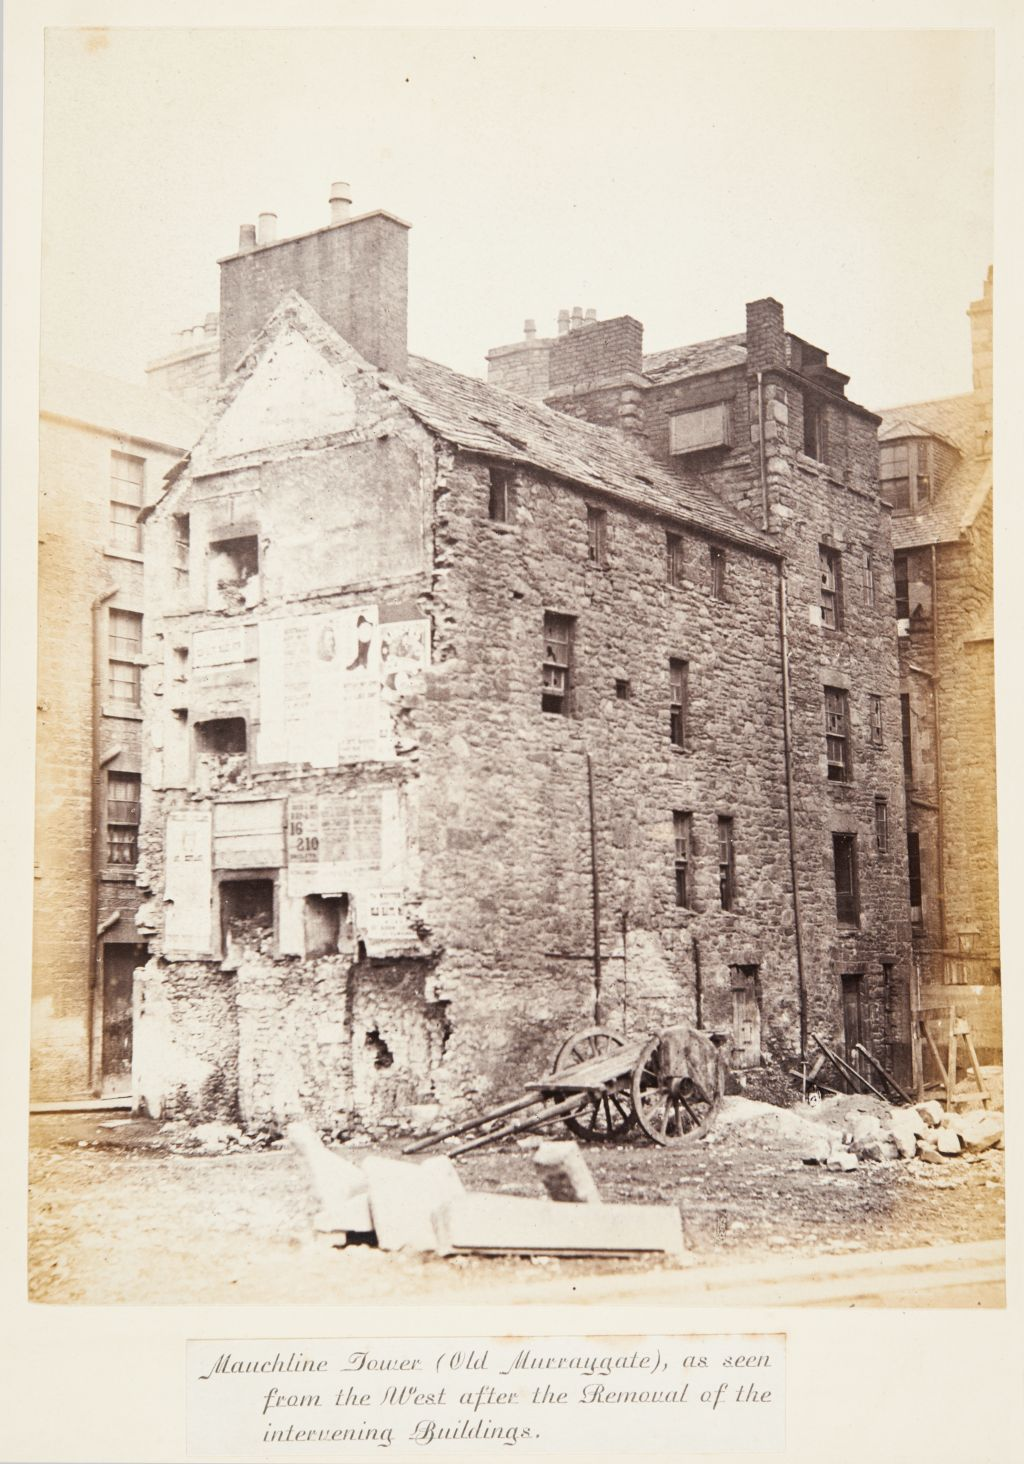 Mauchline Tower (Old Murraygate), as seen from the West after the Removal of the intervening Buildings [Dundee].